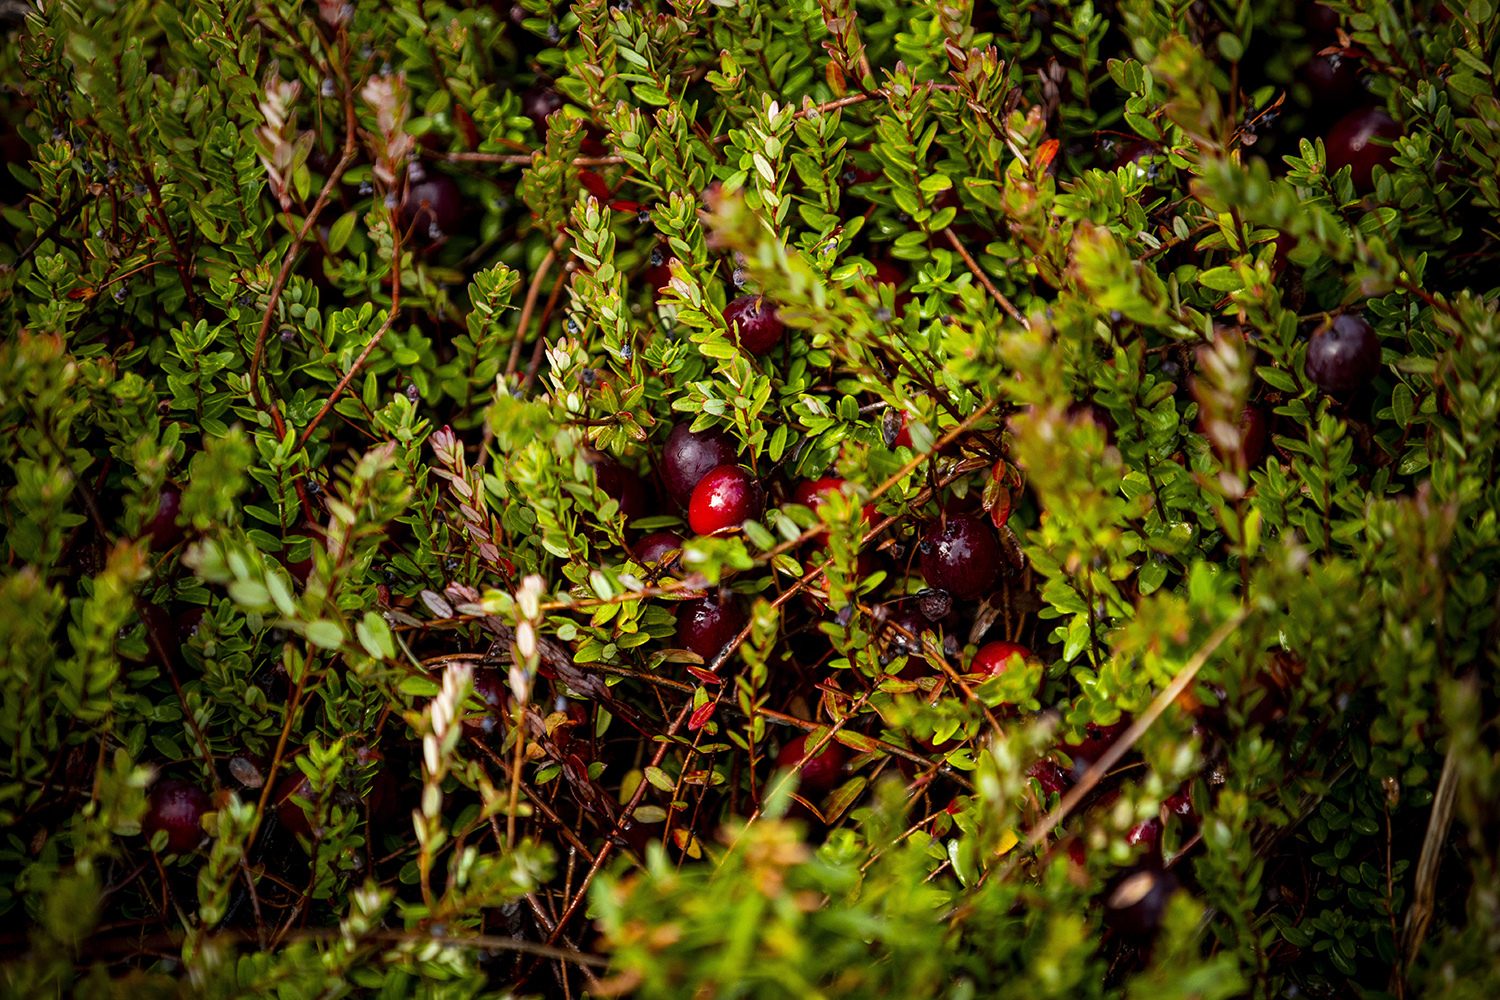 Cranberry plants are low-growing perennial vines.